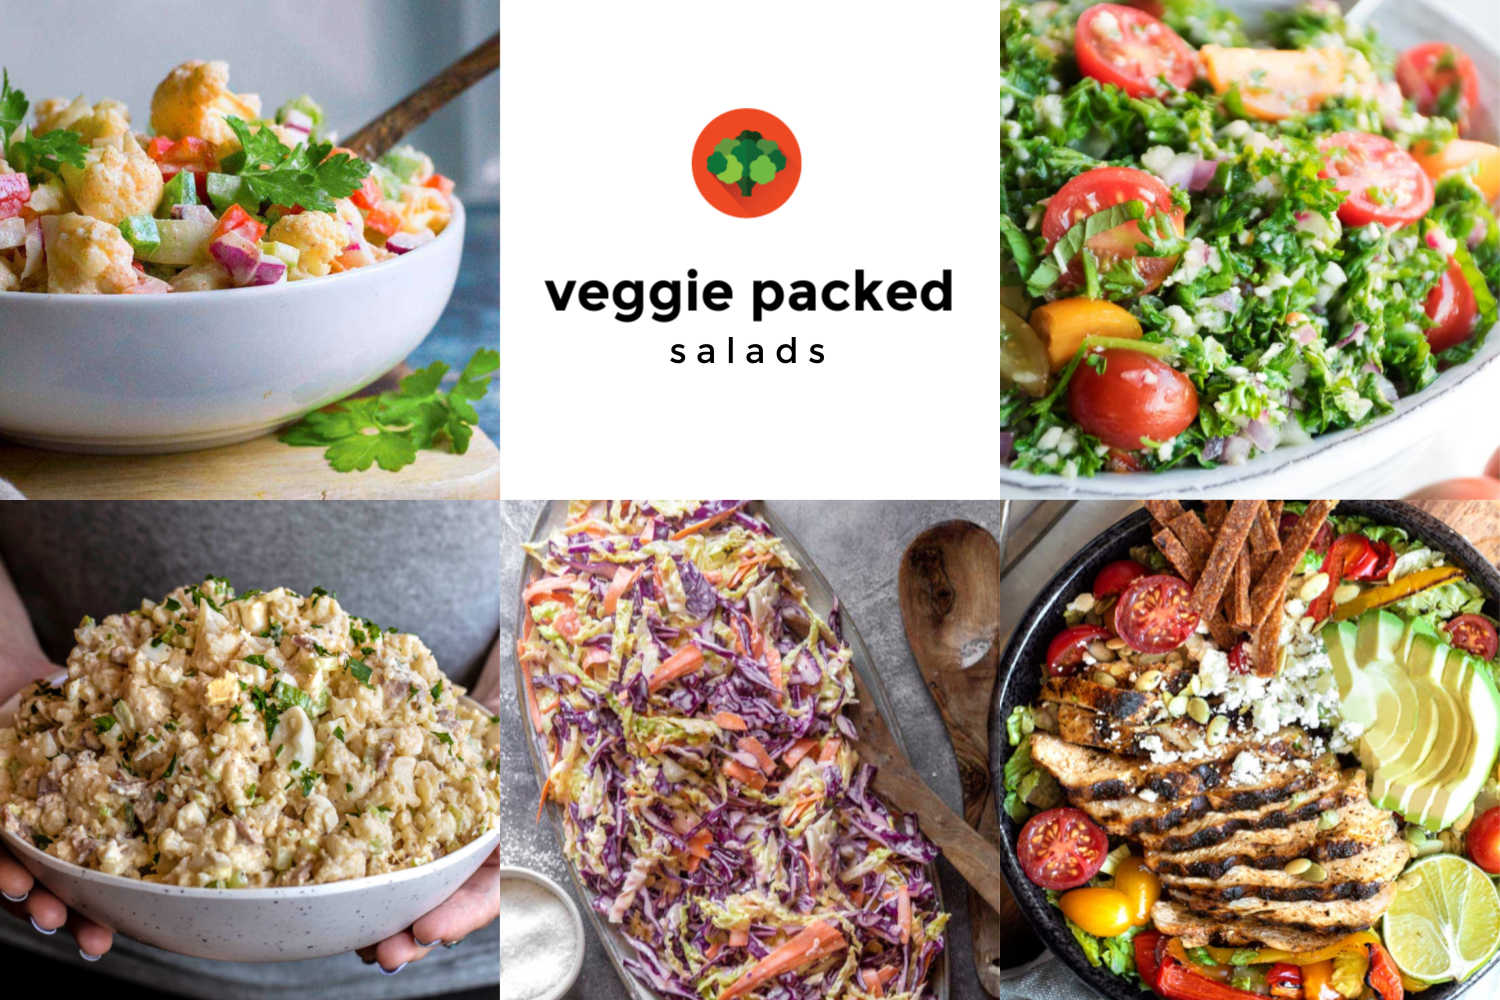 Collage of various veggie packed salads